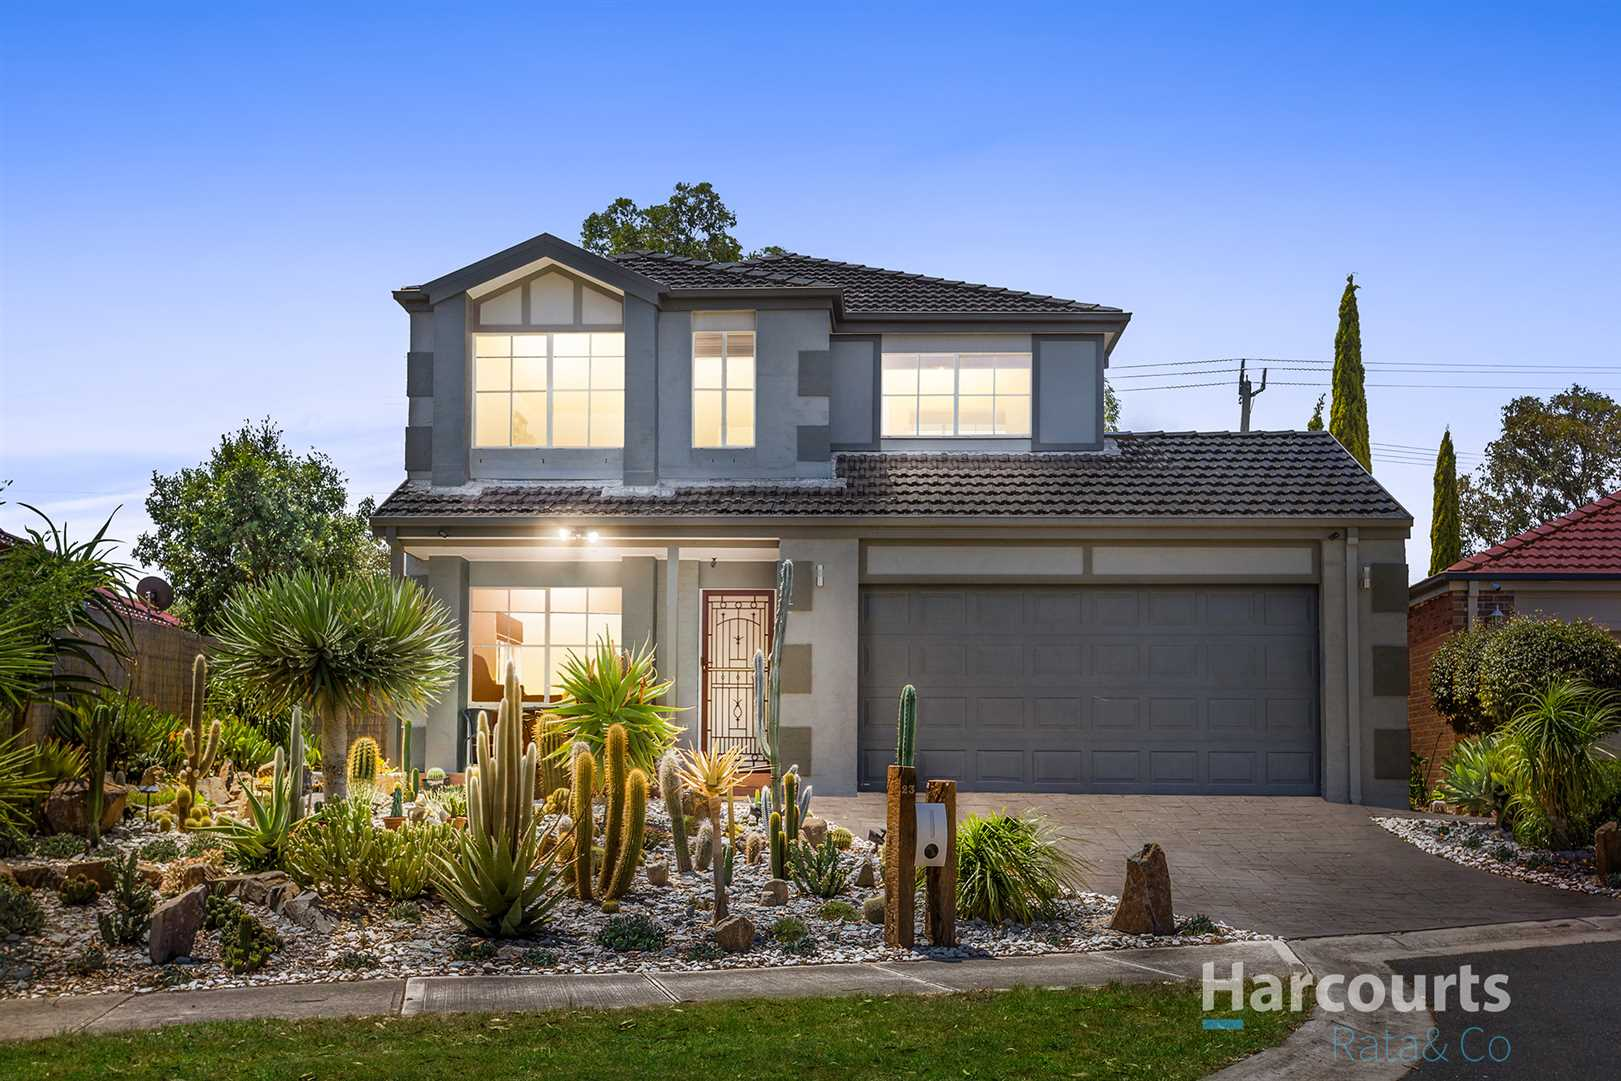 4 Bedroom home in ideal location